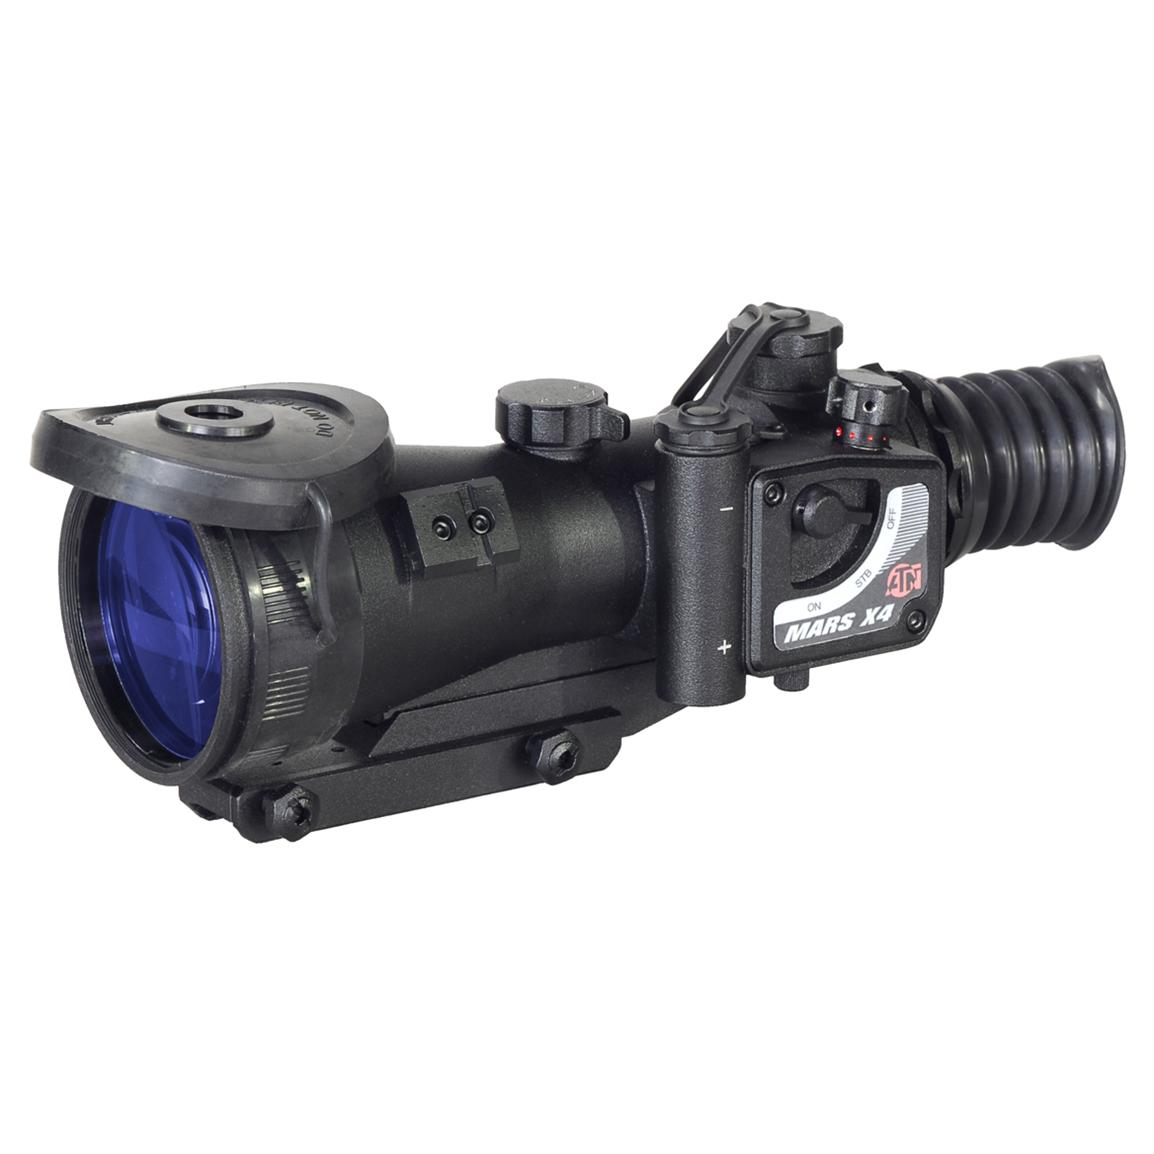 ATN MARS4x-WPT Night Vision Weapon Sight